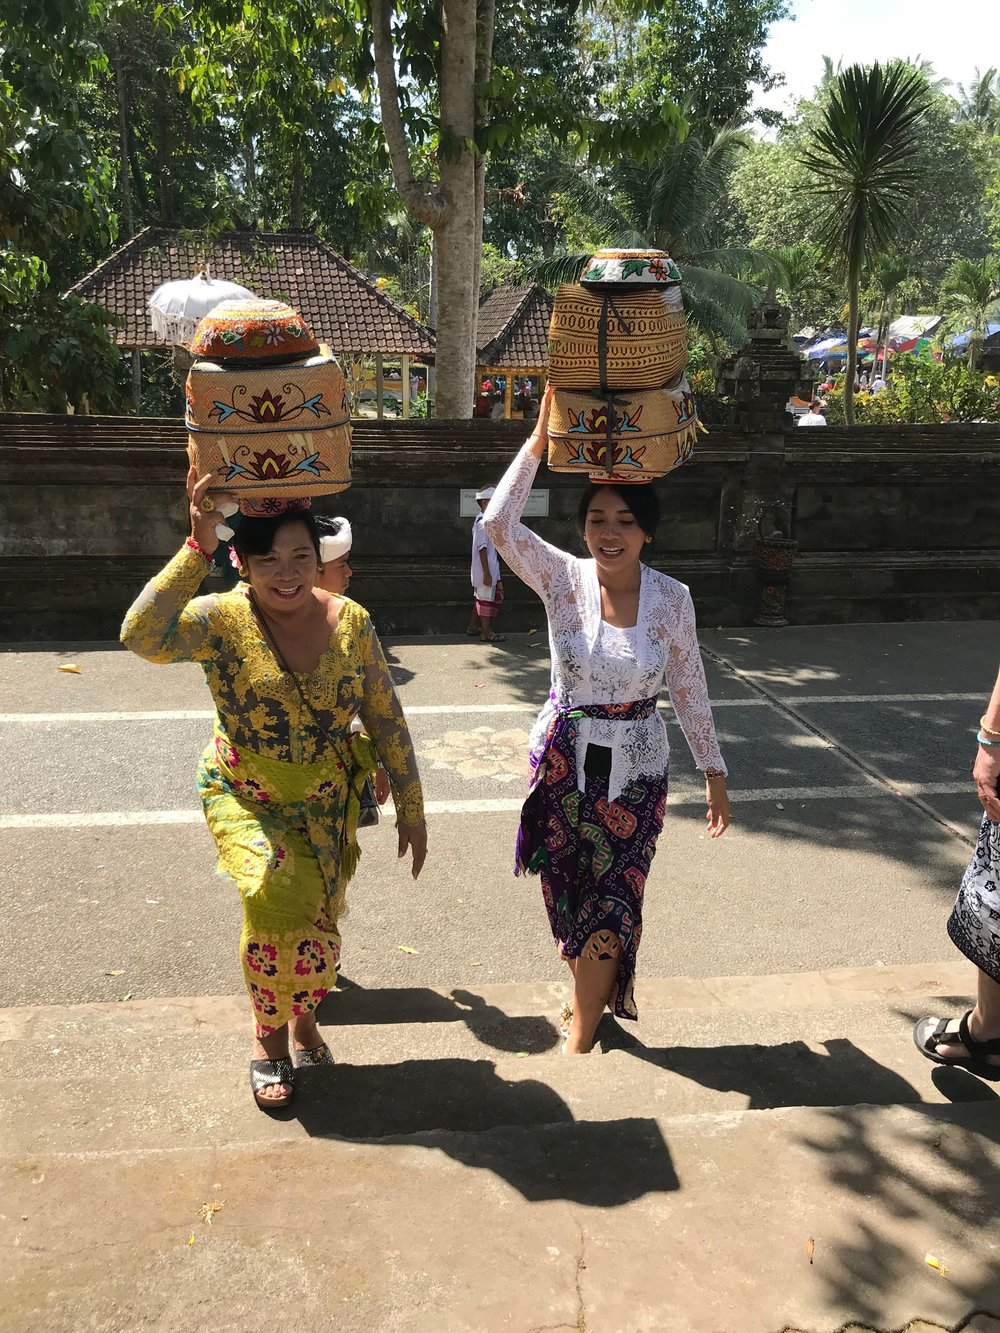 Women carry their loads in woven containers atop their heads